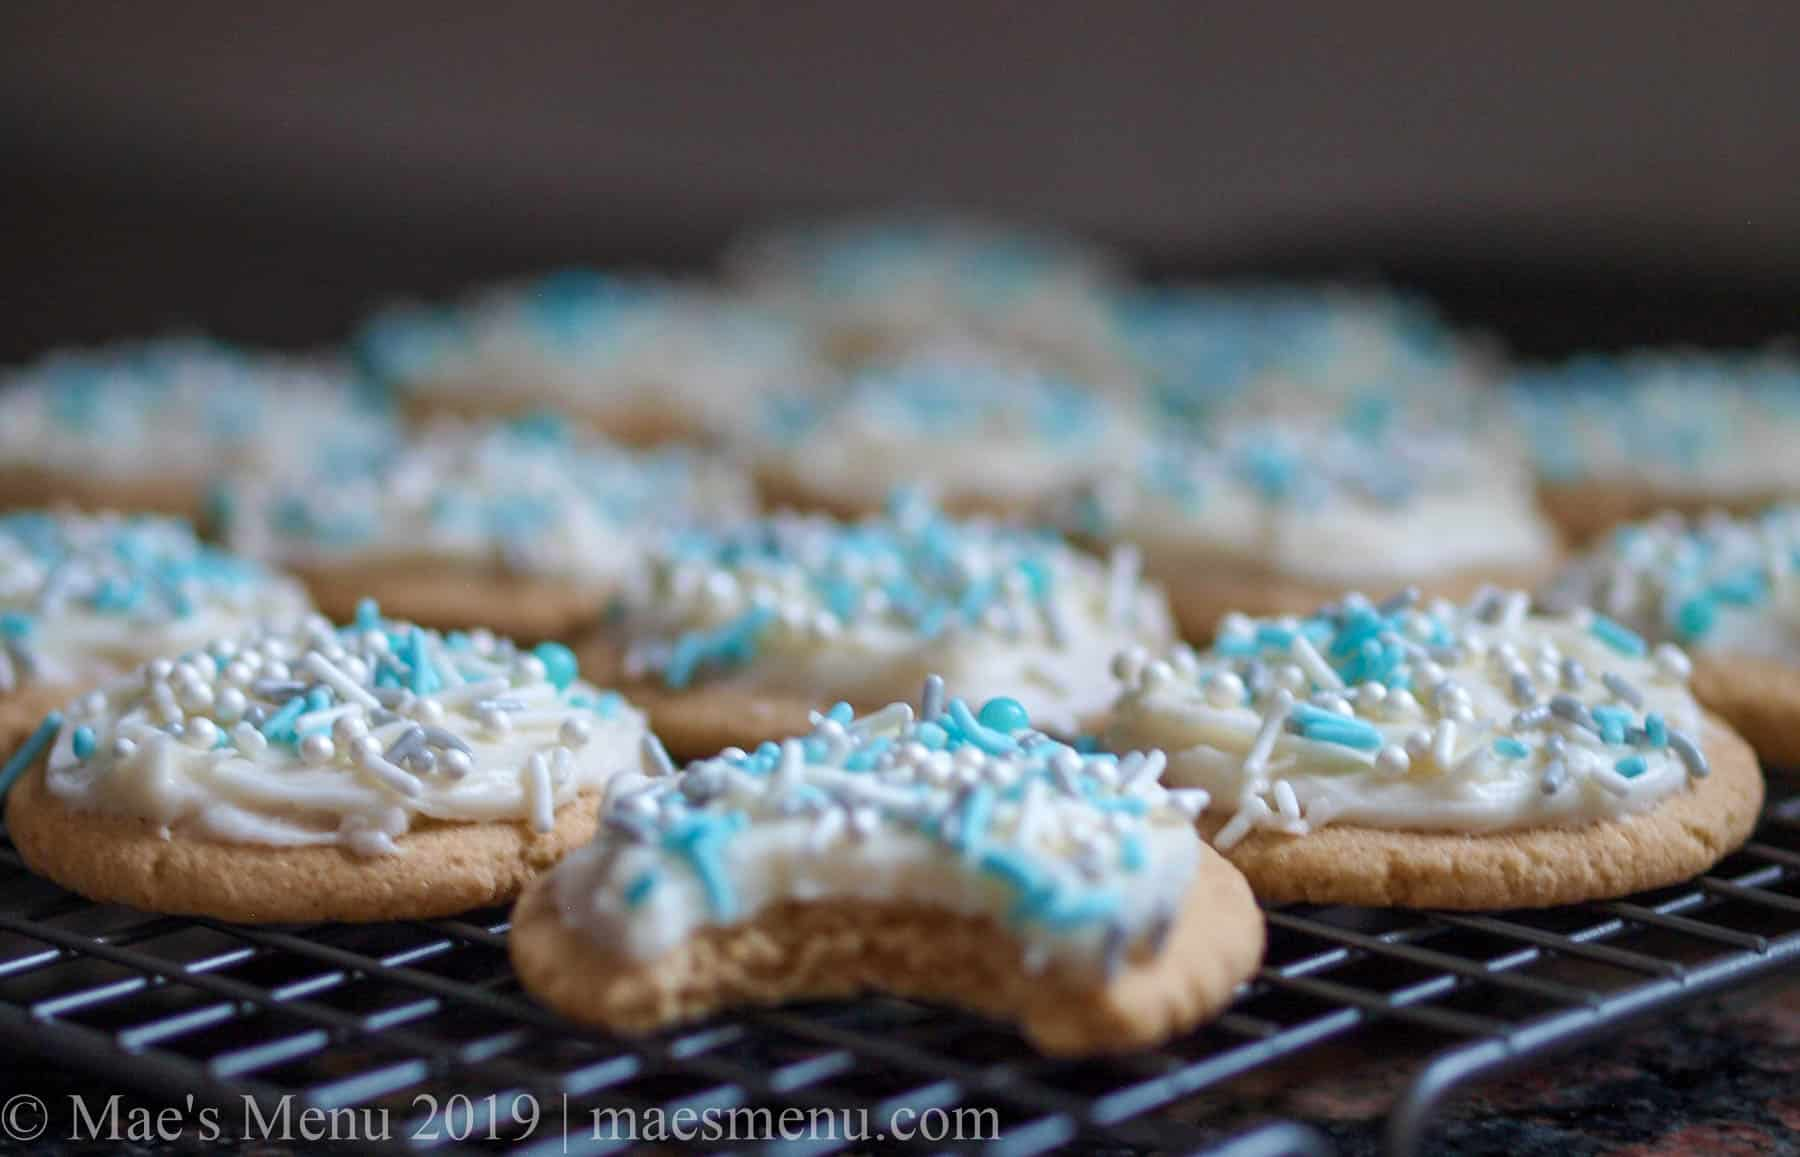 A tray of cooking sugar cookies with vanilla cream cheese frosting.